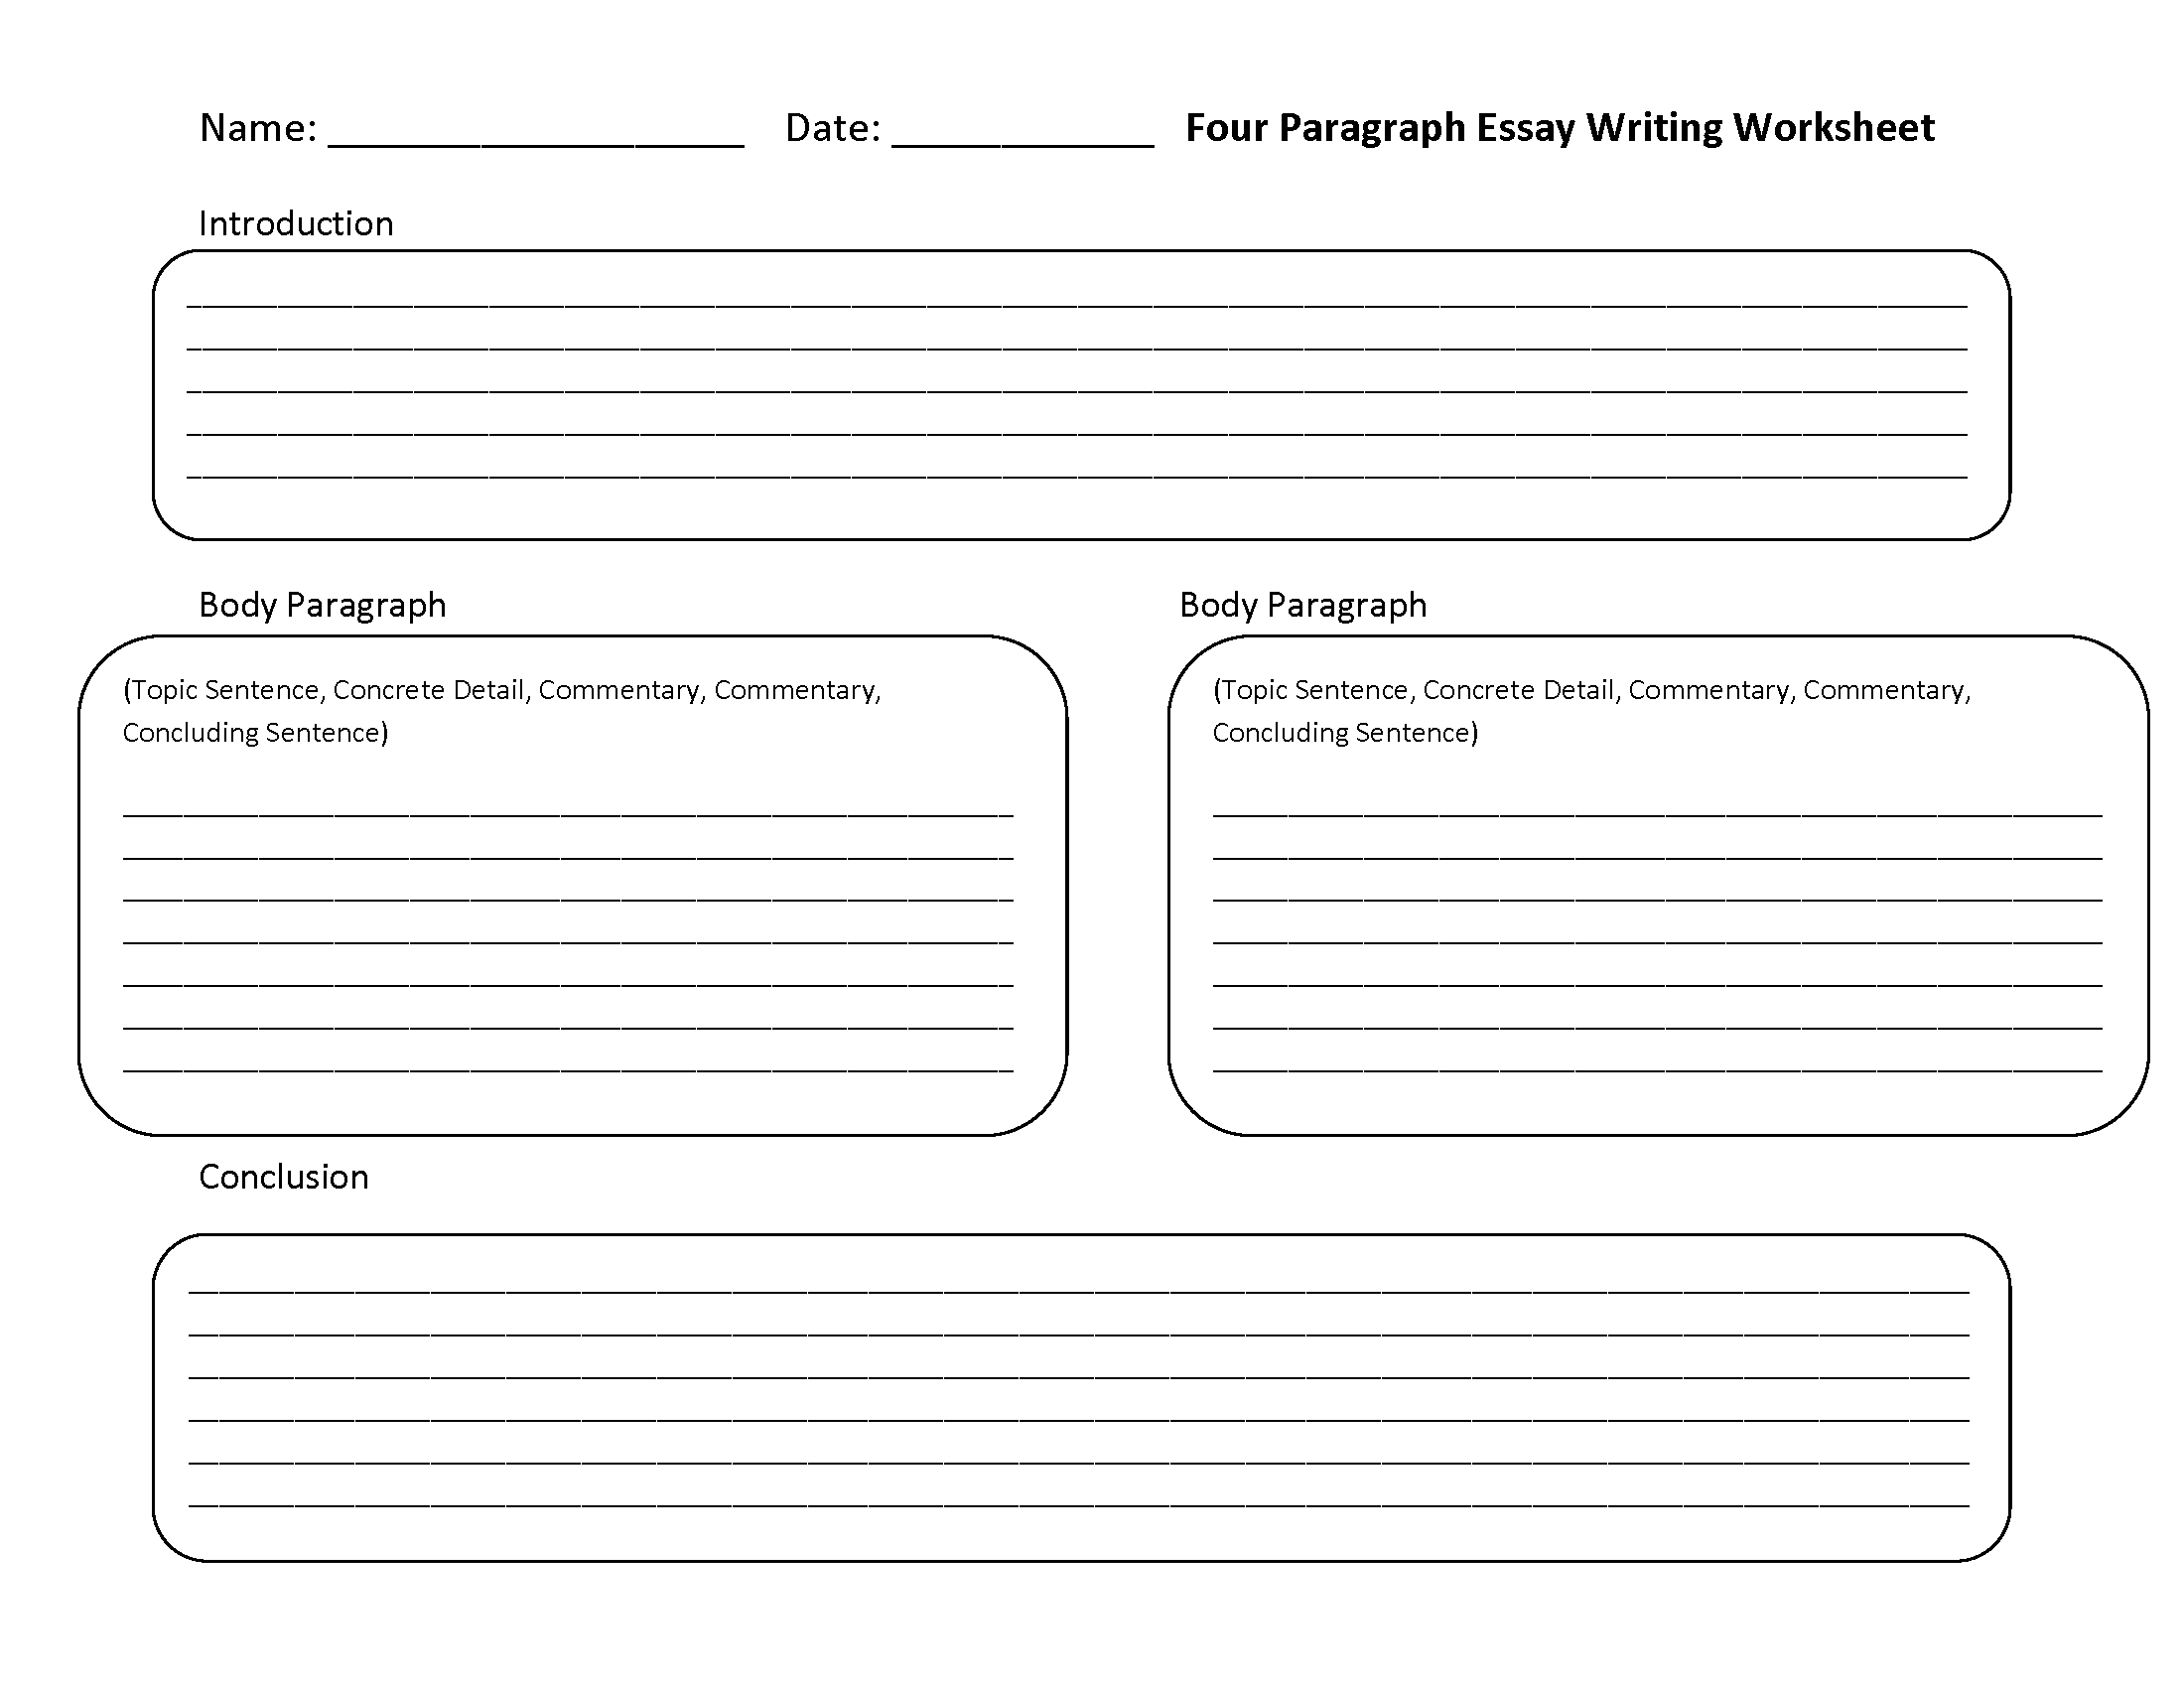 four types of essays writing worksheets essay writing worksheets  writing worksheets essay writing worksheets four paragraph essay writing worksheets